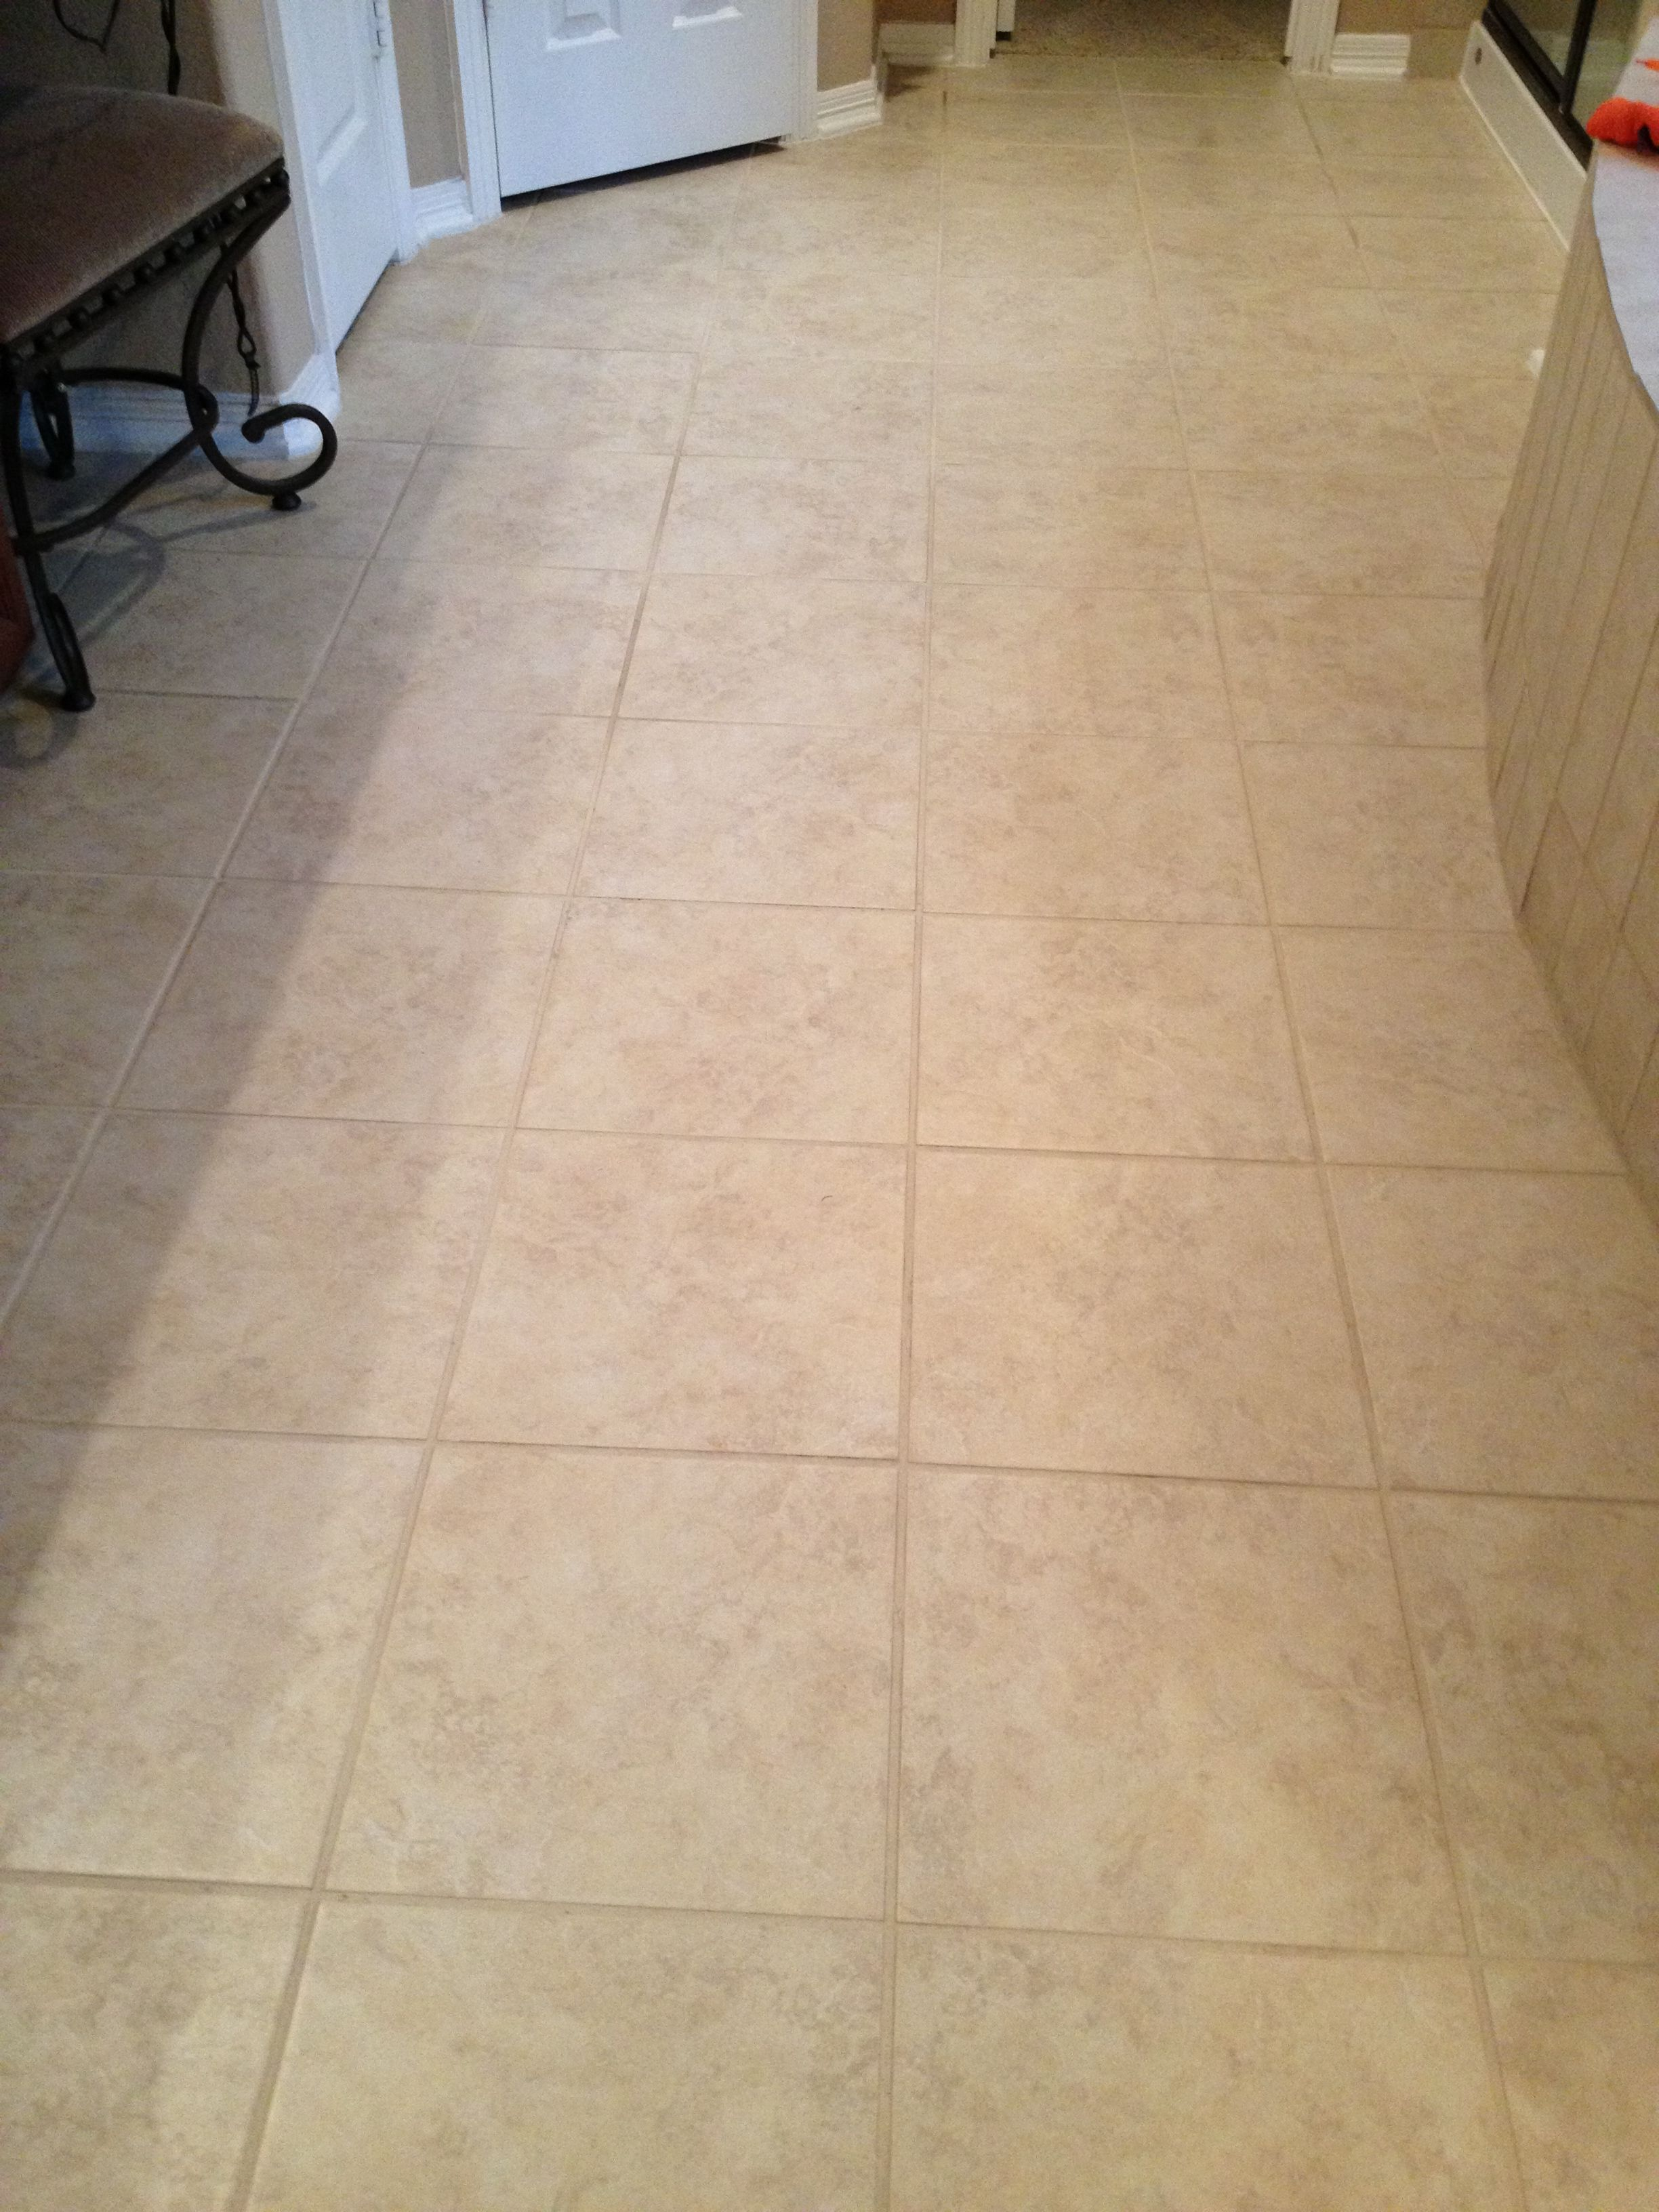 Cleaning Grout In Bathroom After